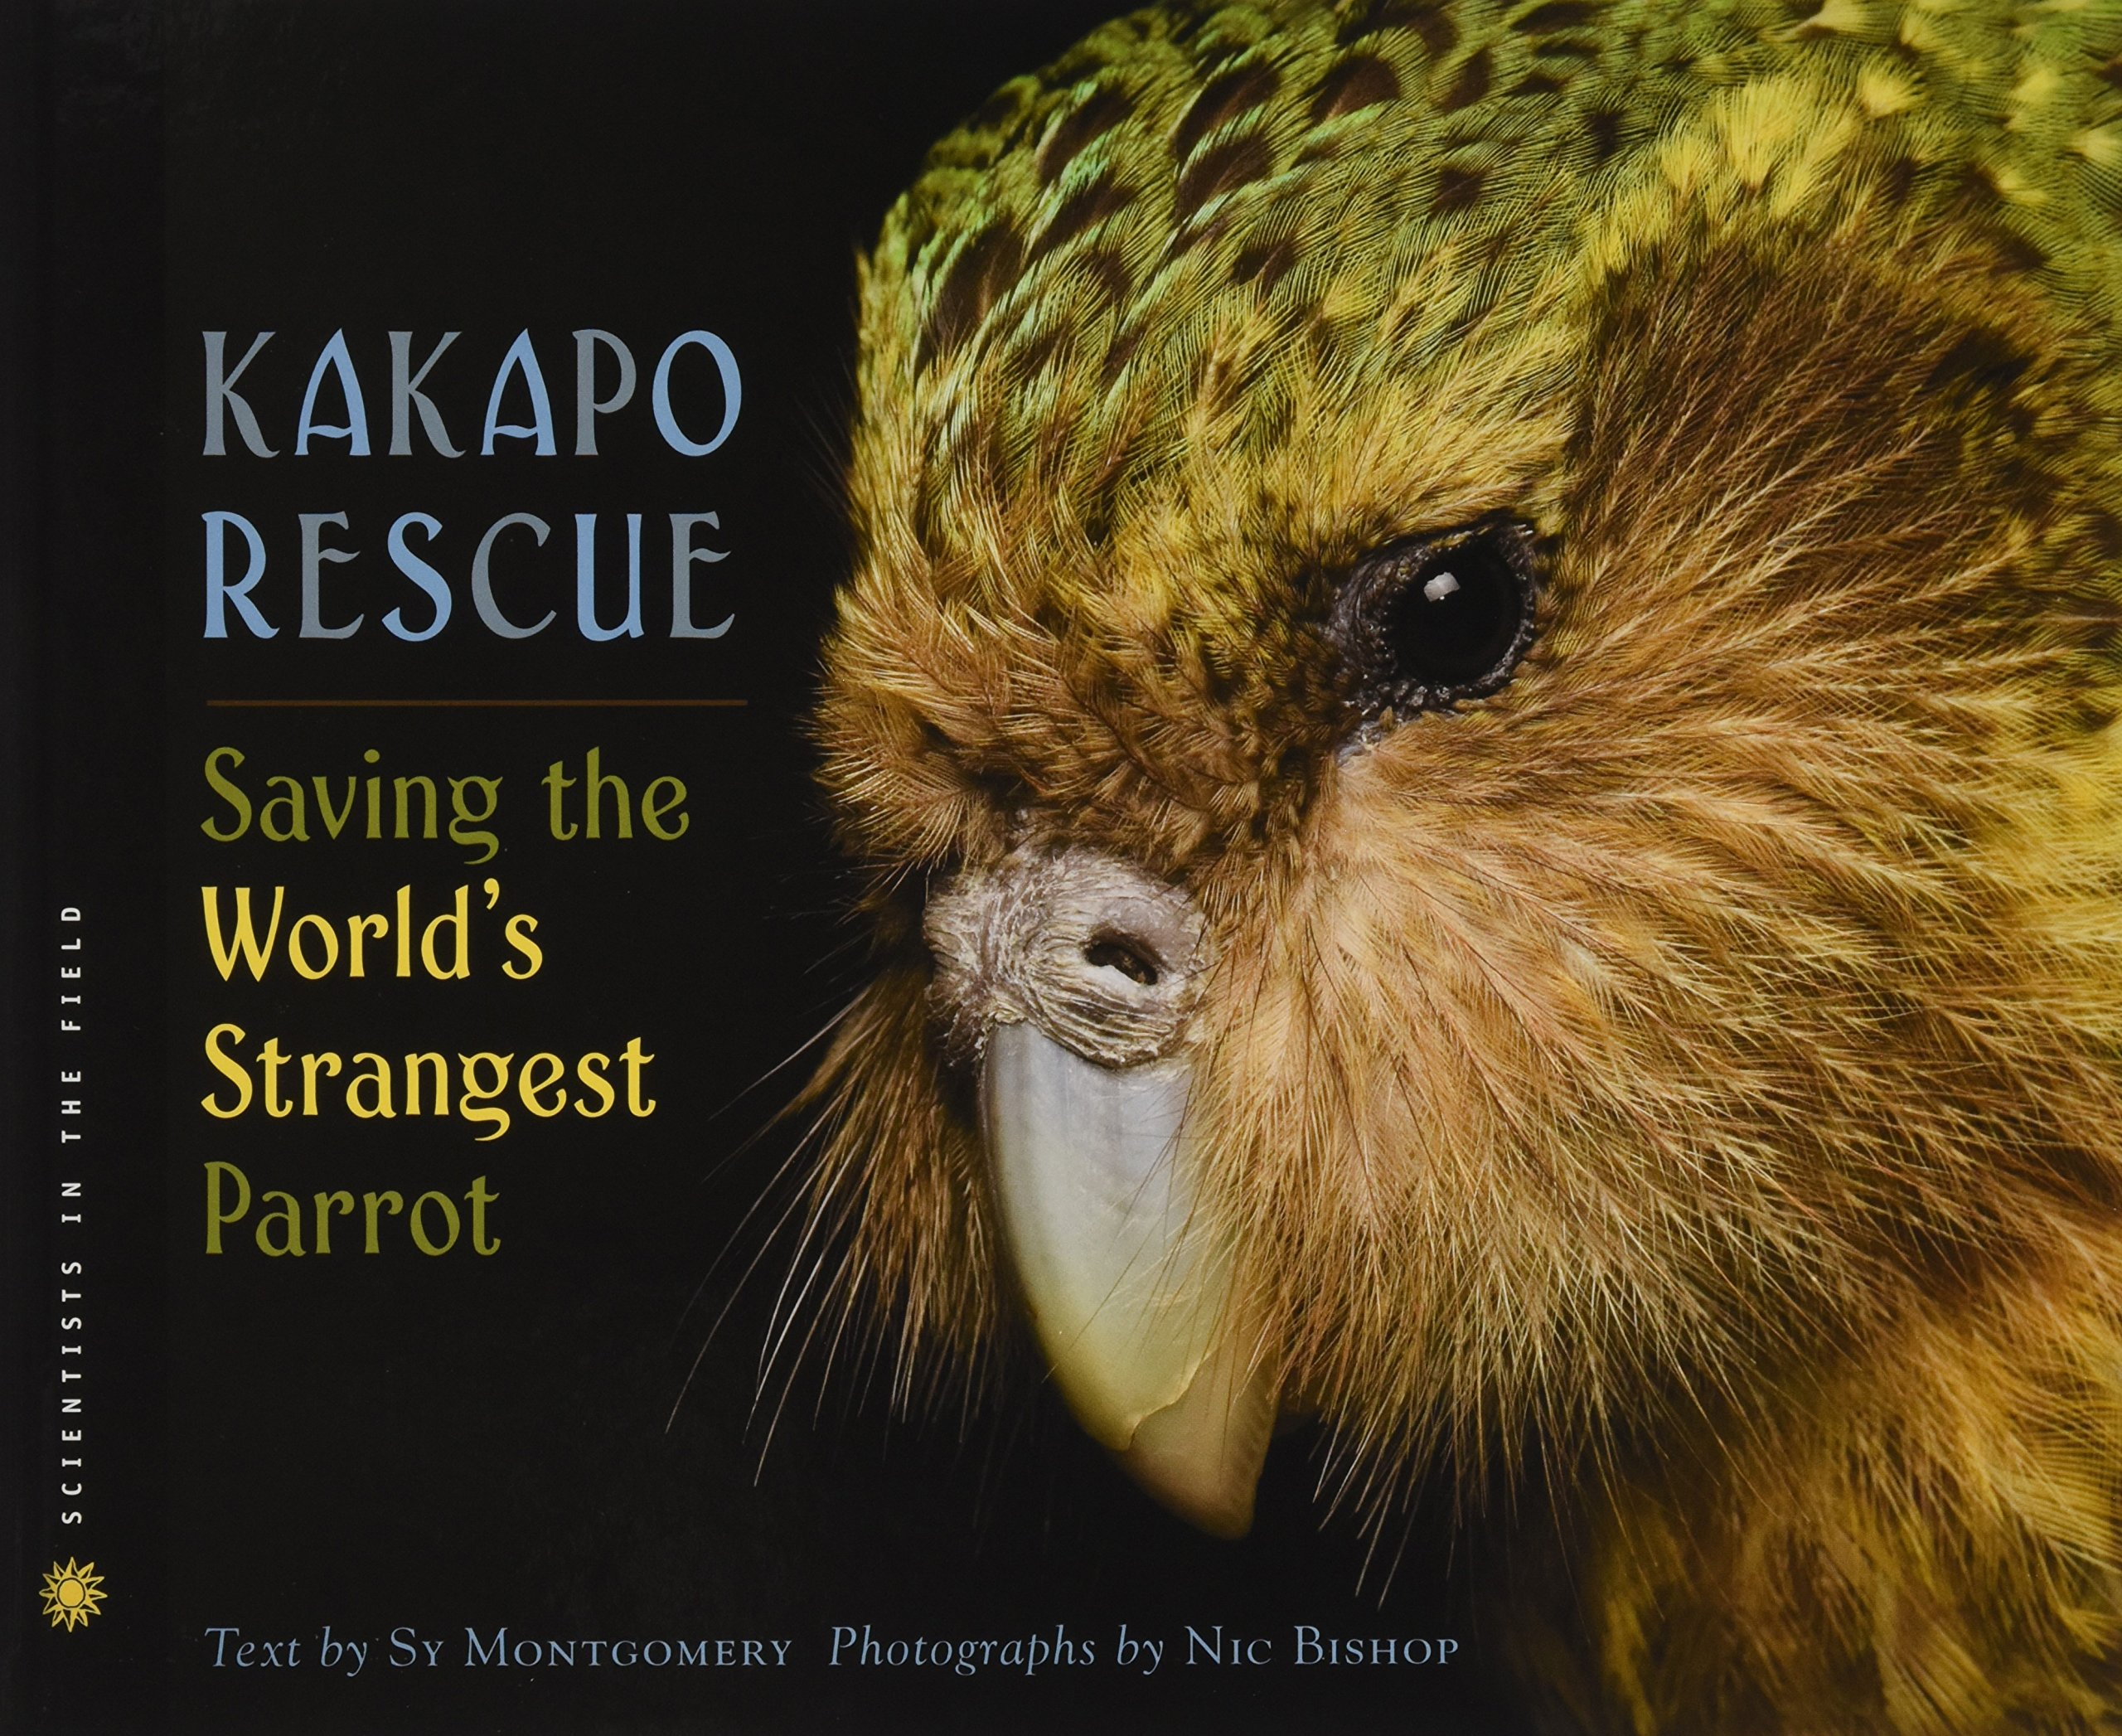 Kakapo Rescue: Saving the World's Strangest Parrot Scientists in the Field  Hardcover: Amazon.co.uk: Sy Montgomery, Nic Bishop: Books